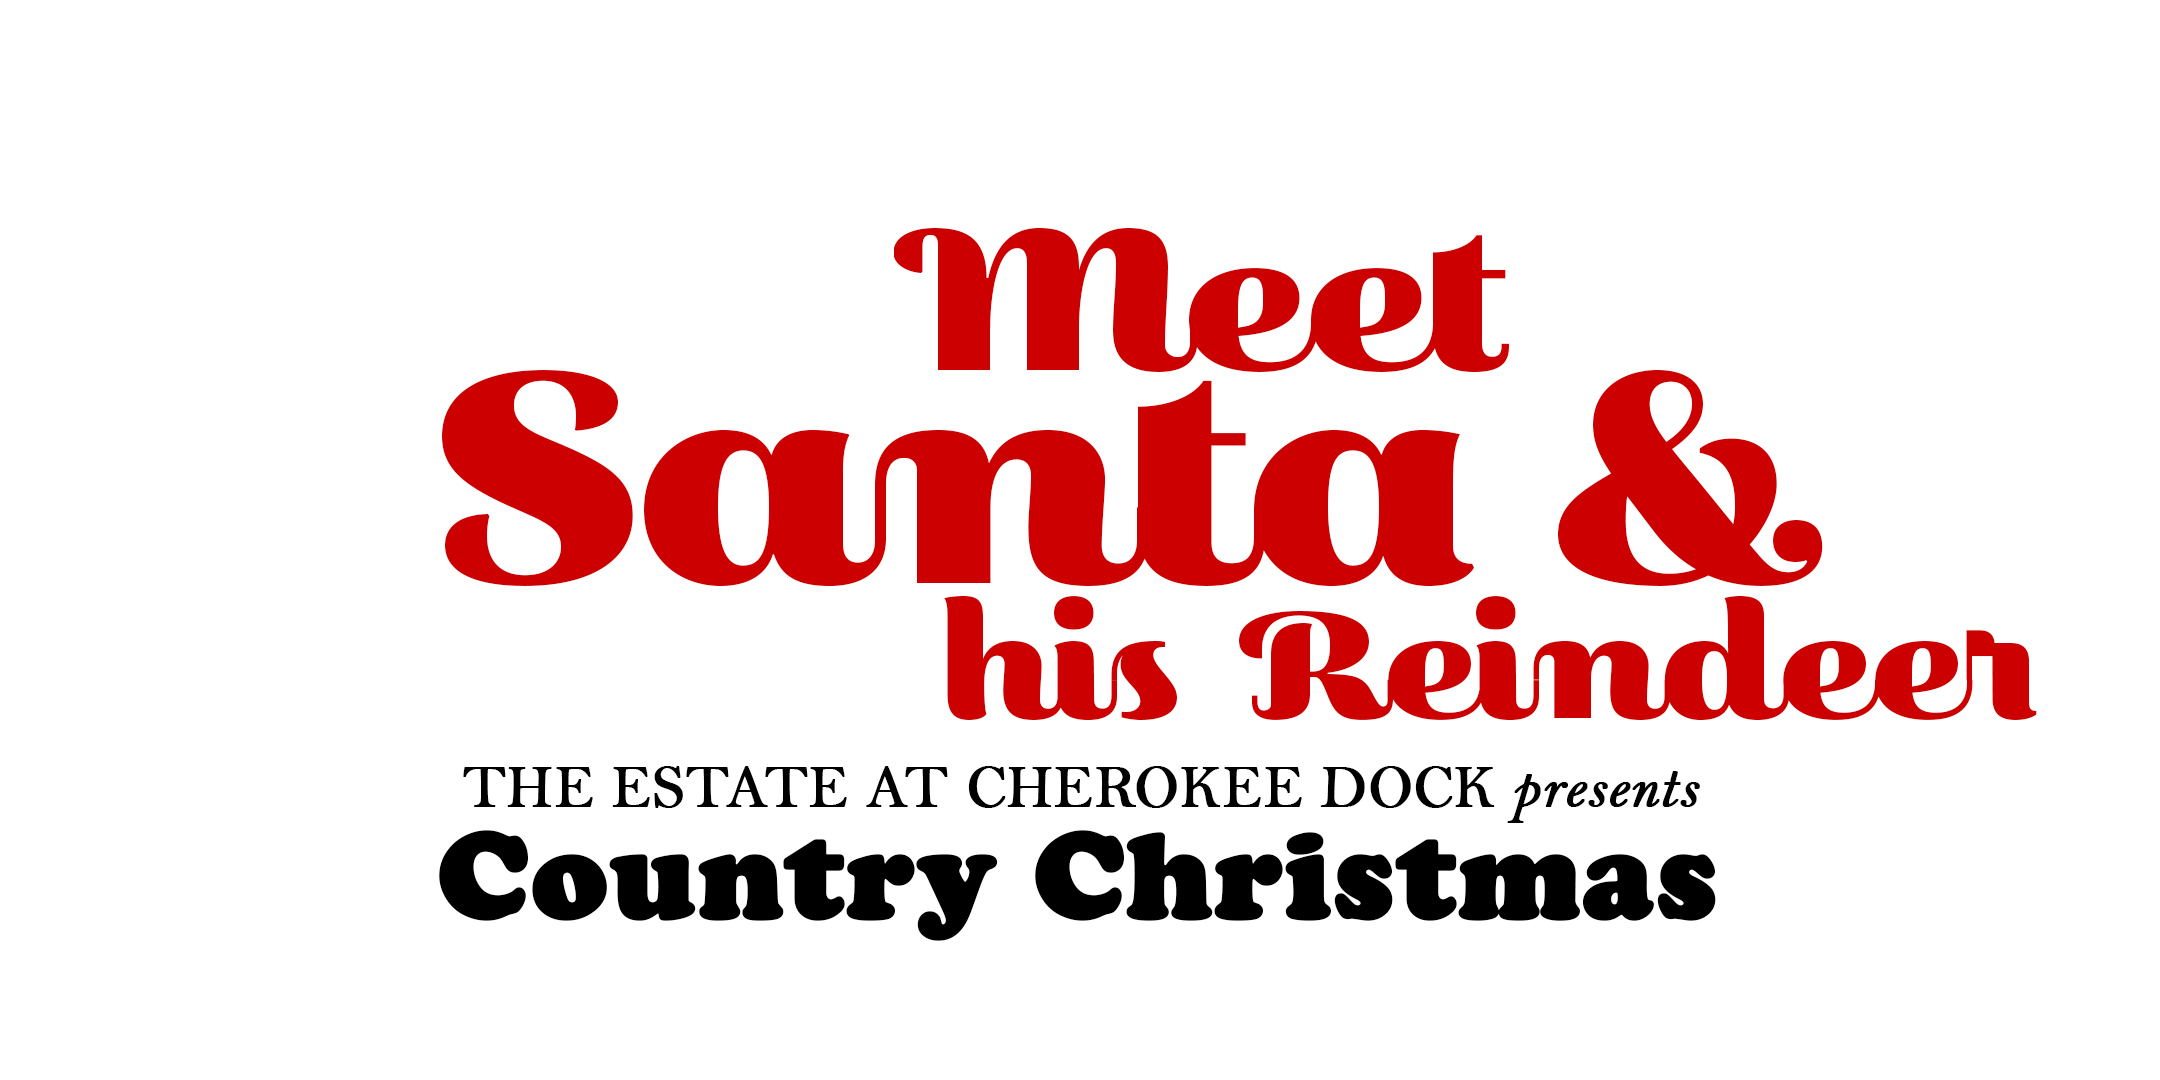 Join us for a country Christmas meal with Santa & his reindeer at the Estate at Cherokee Dock!